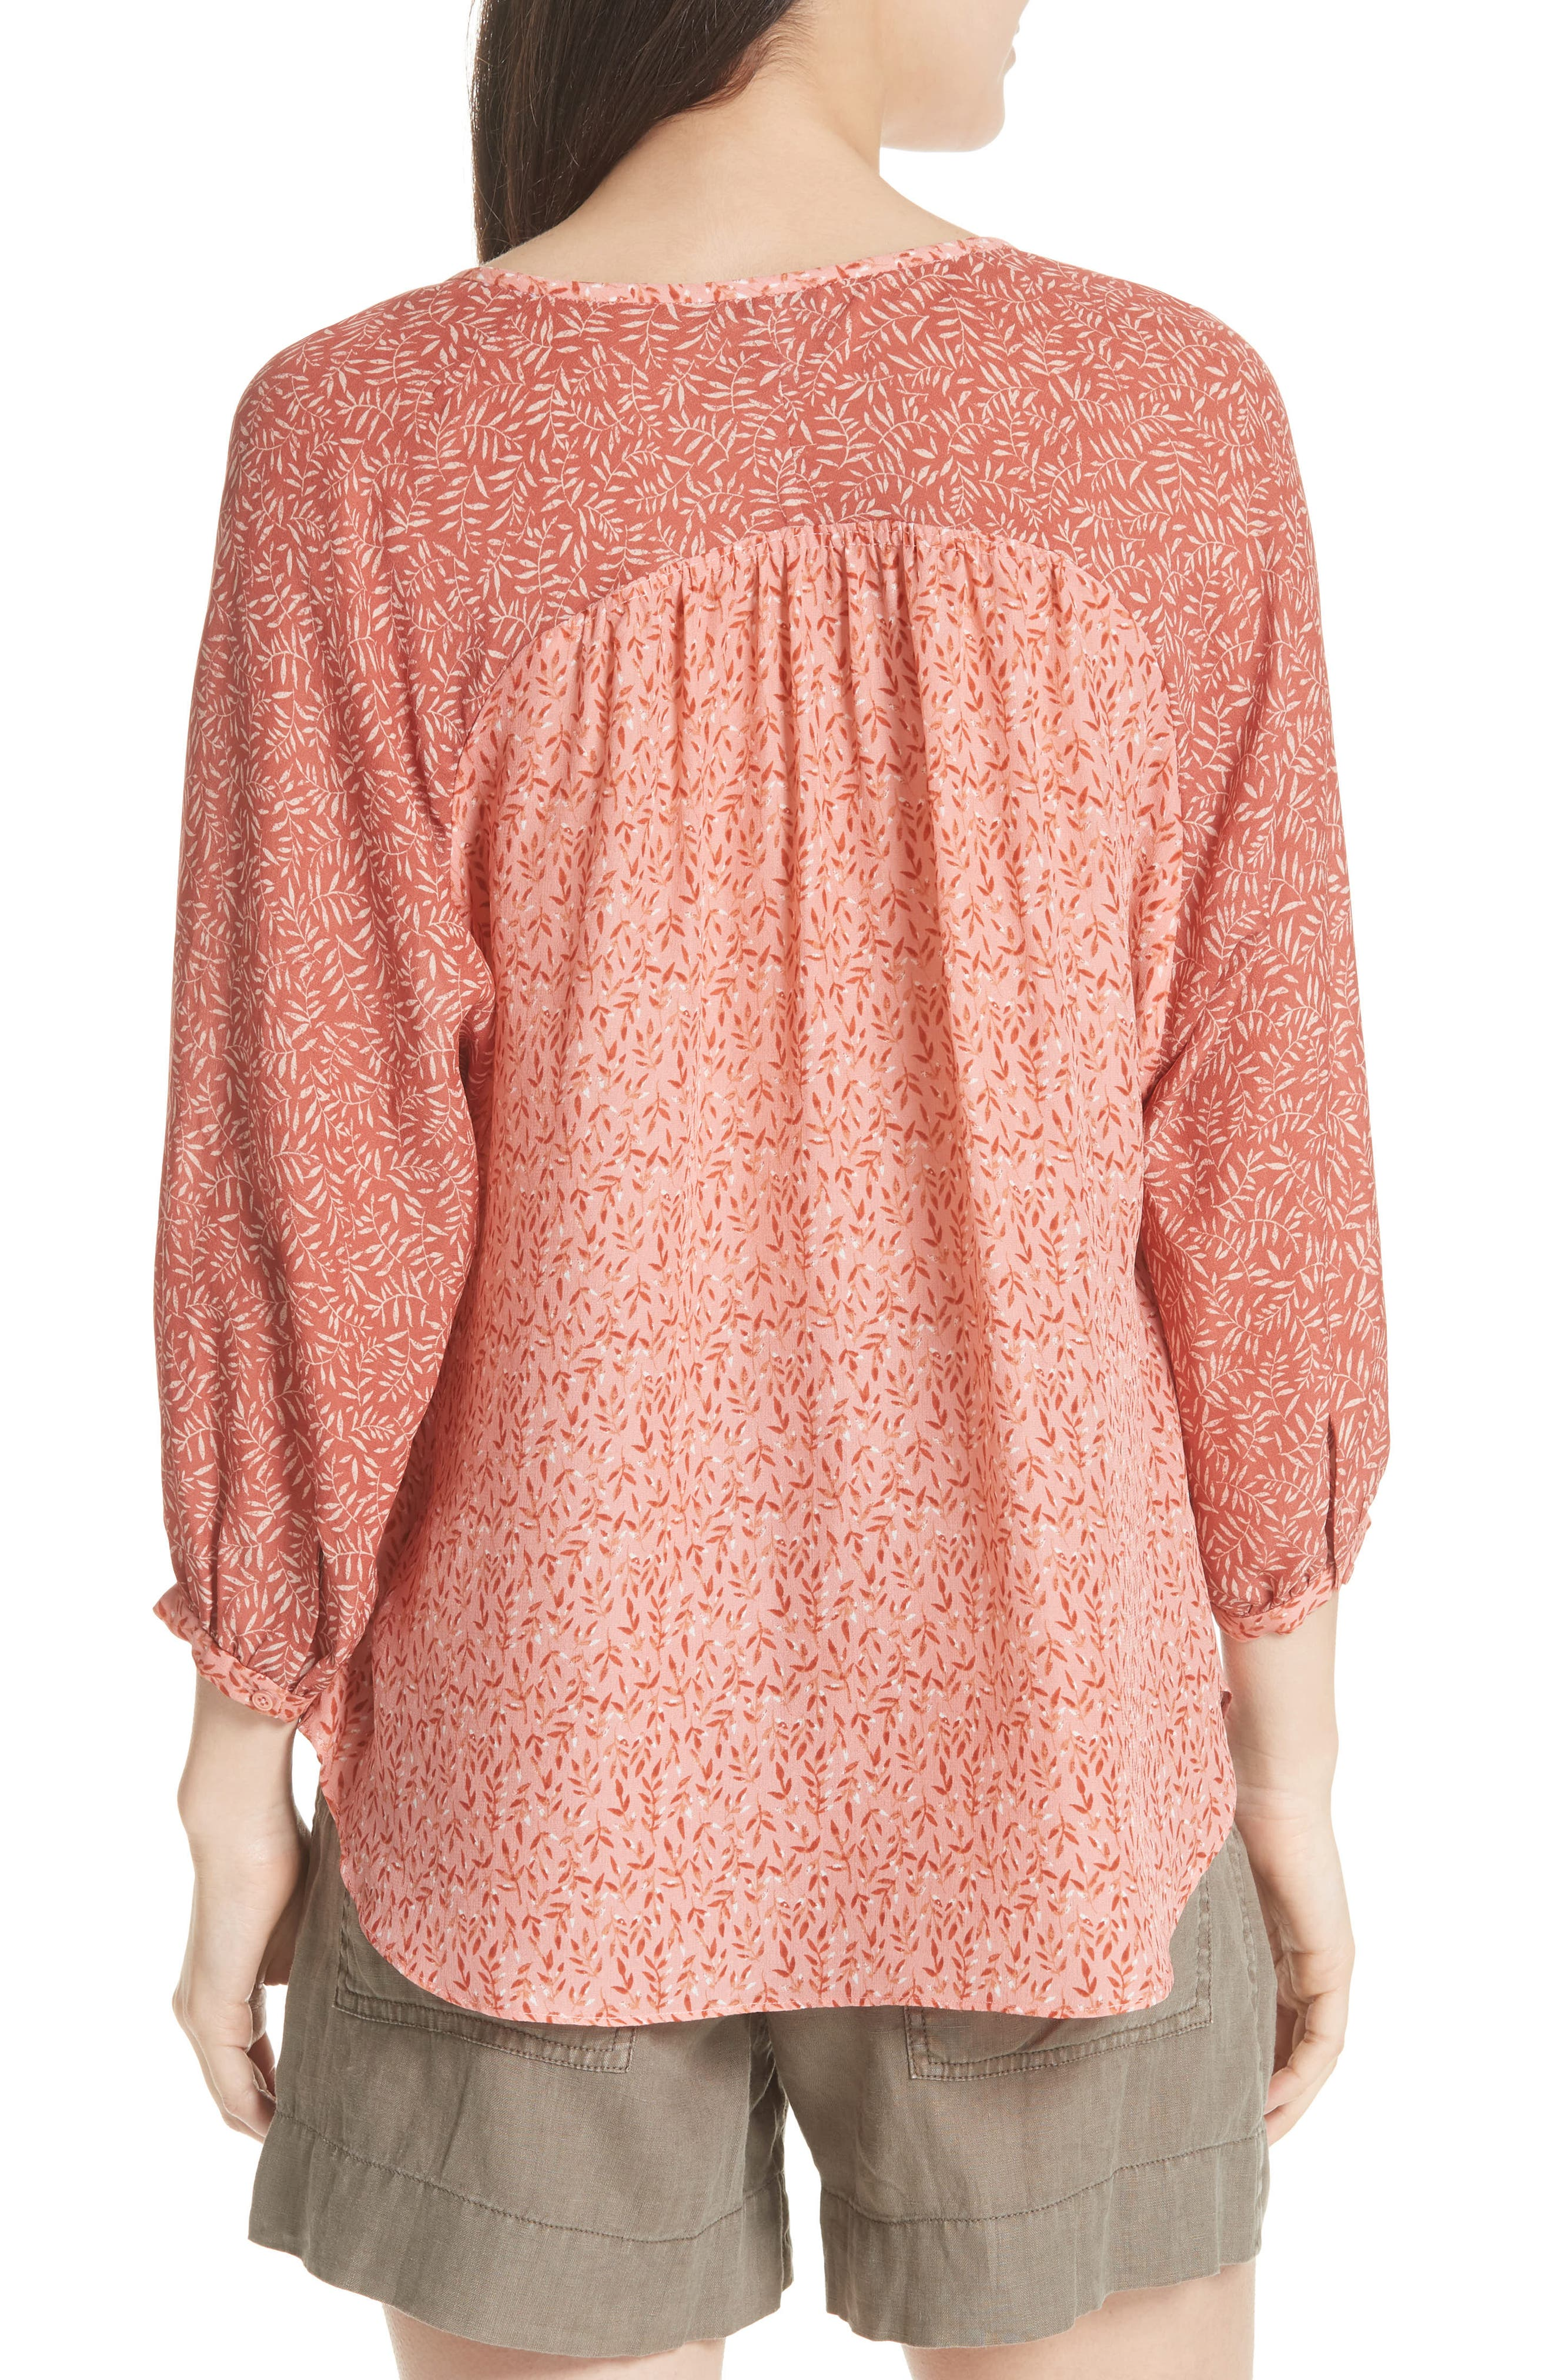 JOIE,                             Jafeth Reverse Pattern Silk Peasant Top,                             Alternate thumbnail 2, color,                             609